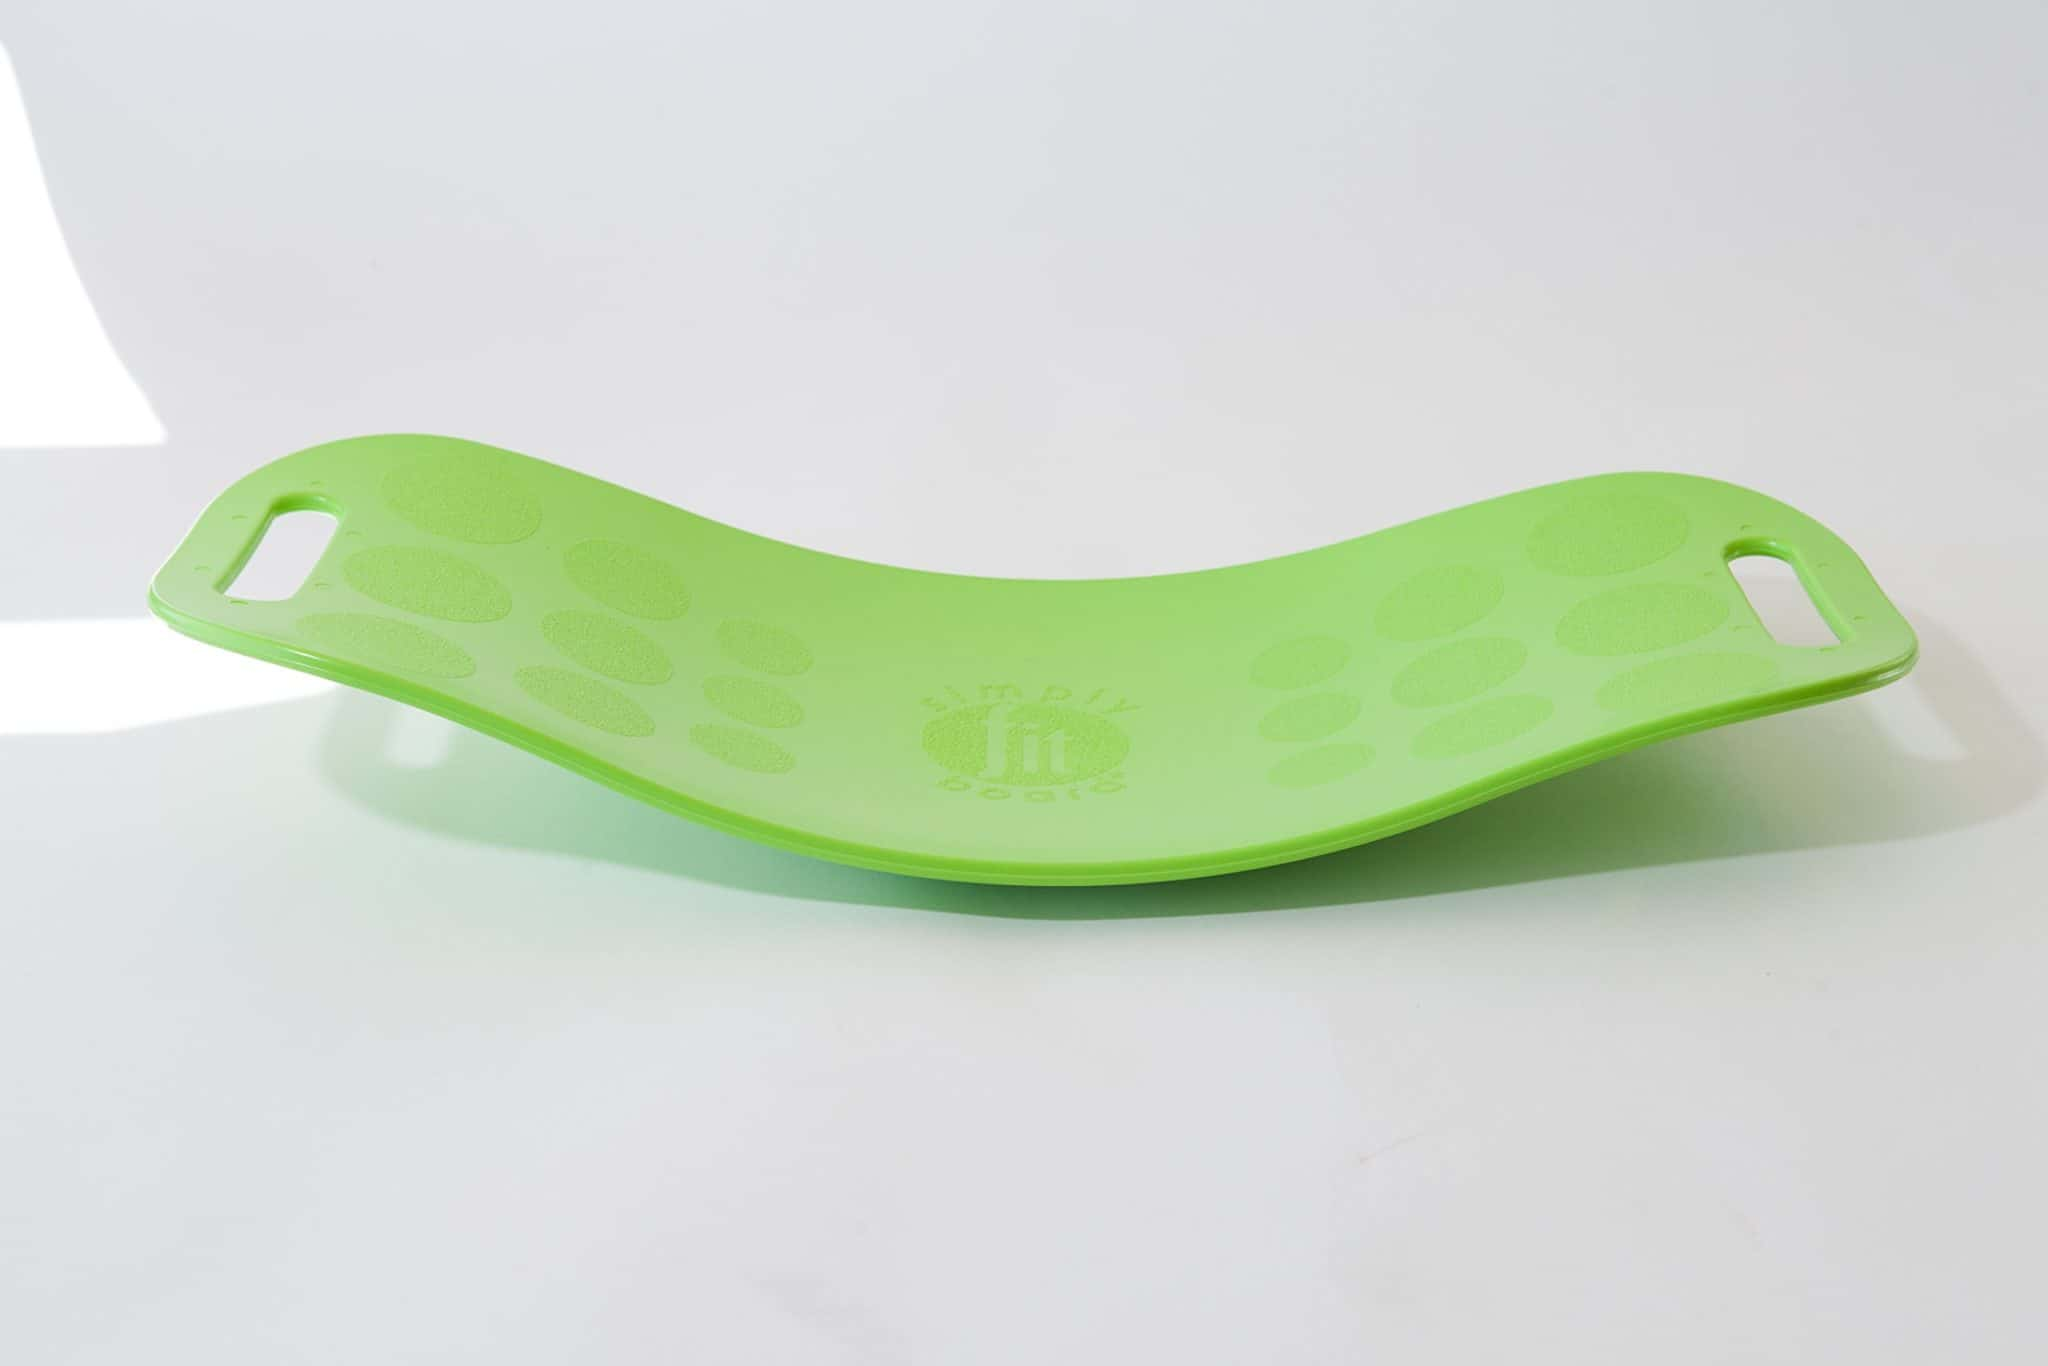 Simly Fit Board Green Review